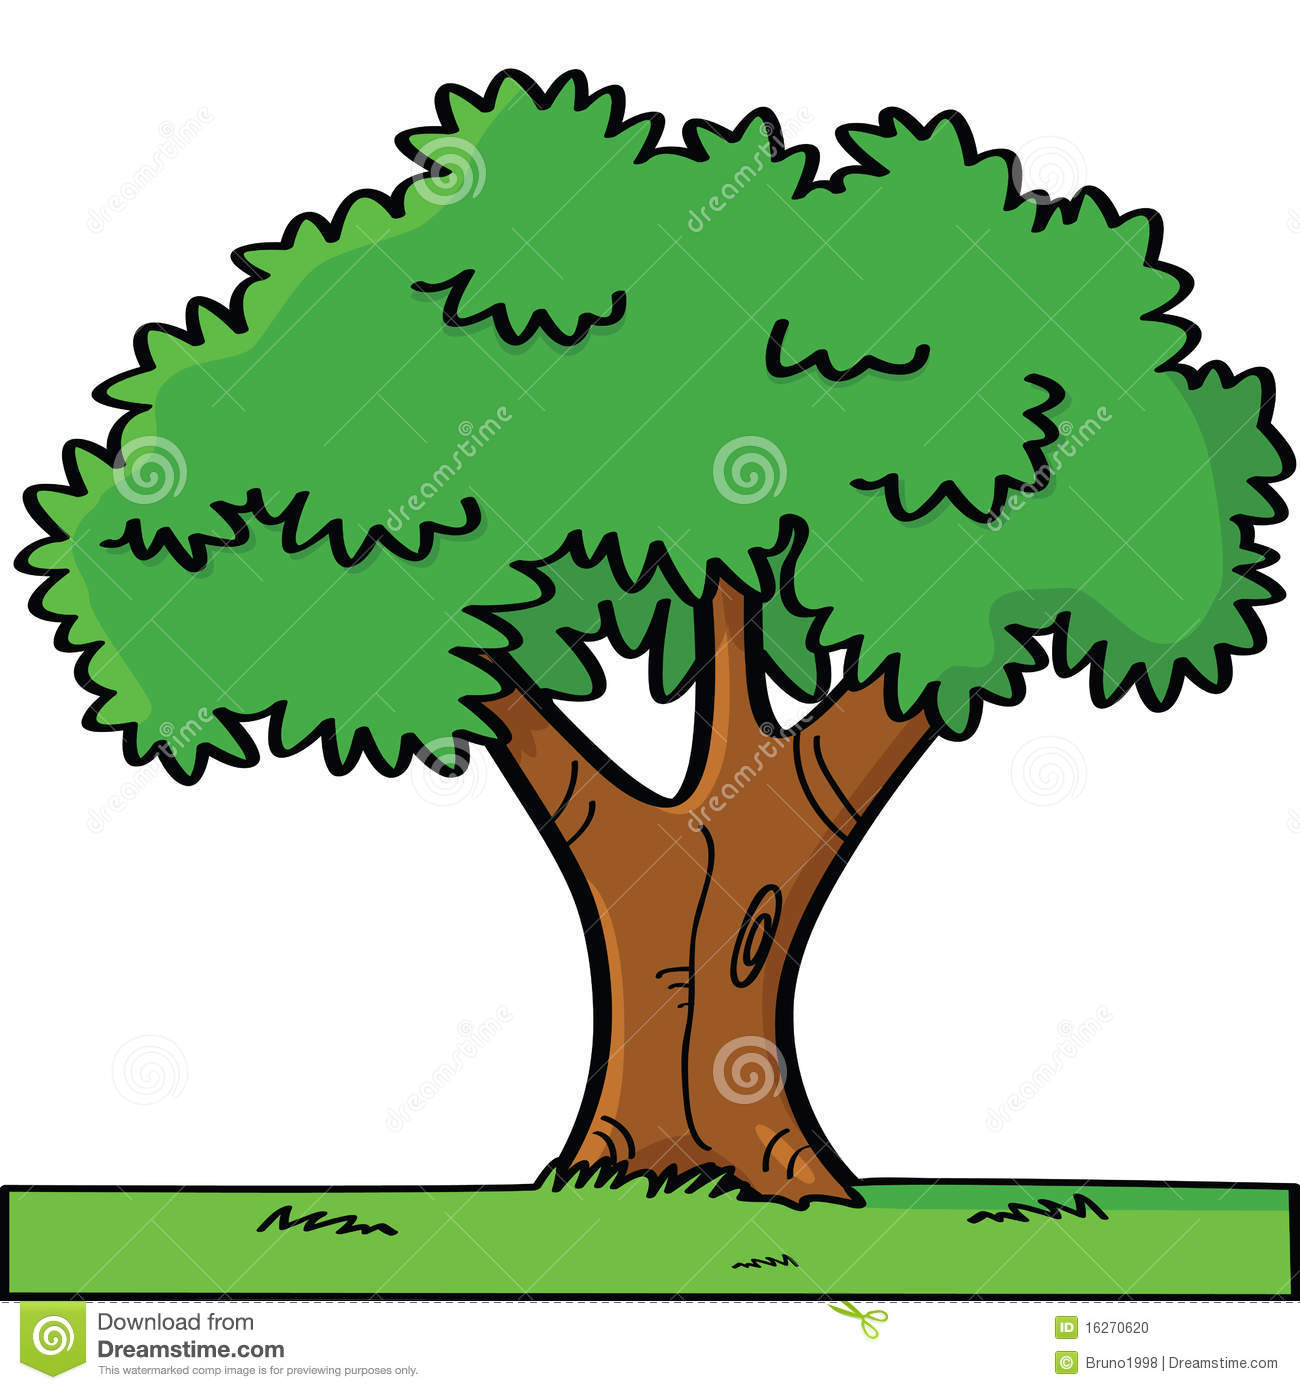 How To Read A House Plan Cartoon Tree Stock Photo Image 16270620